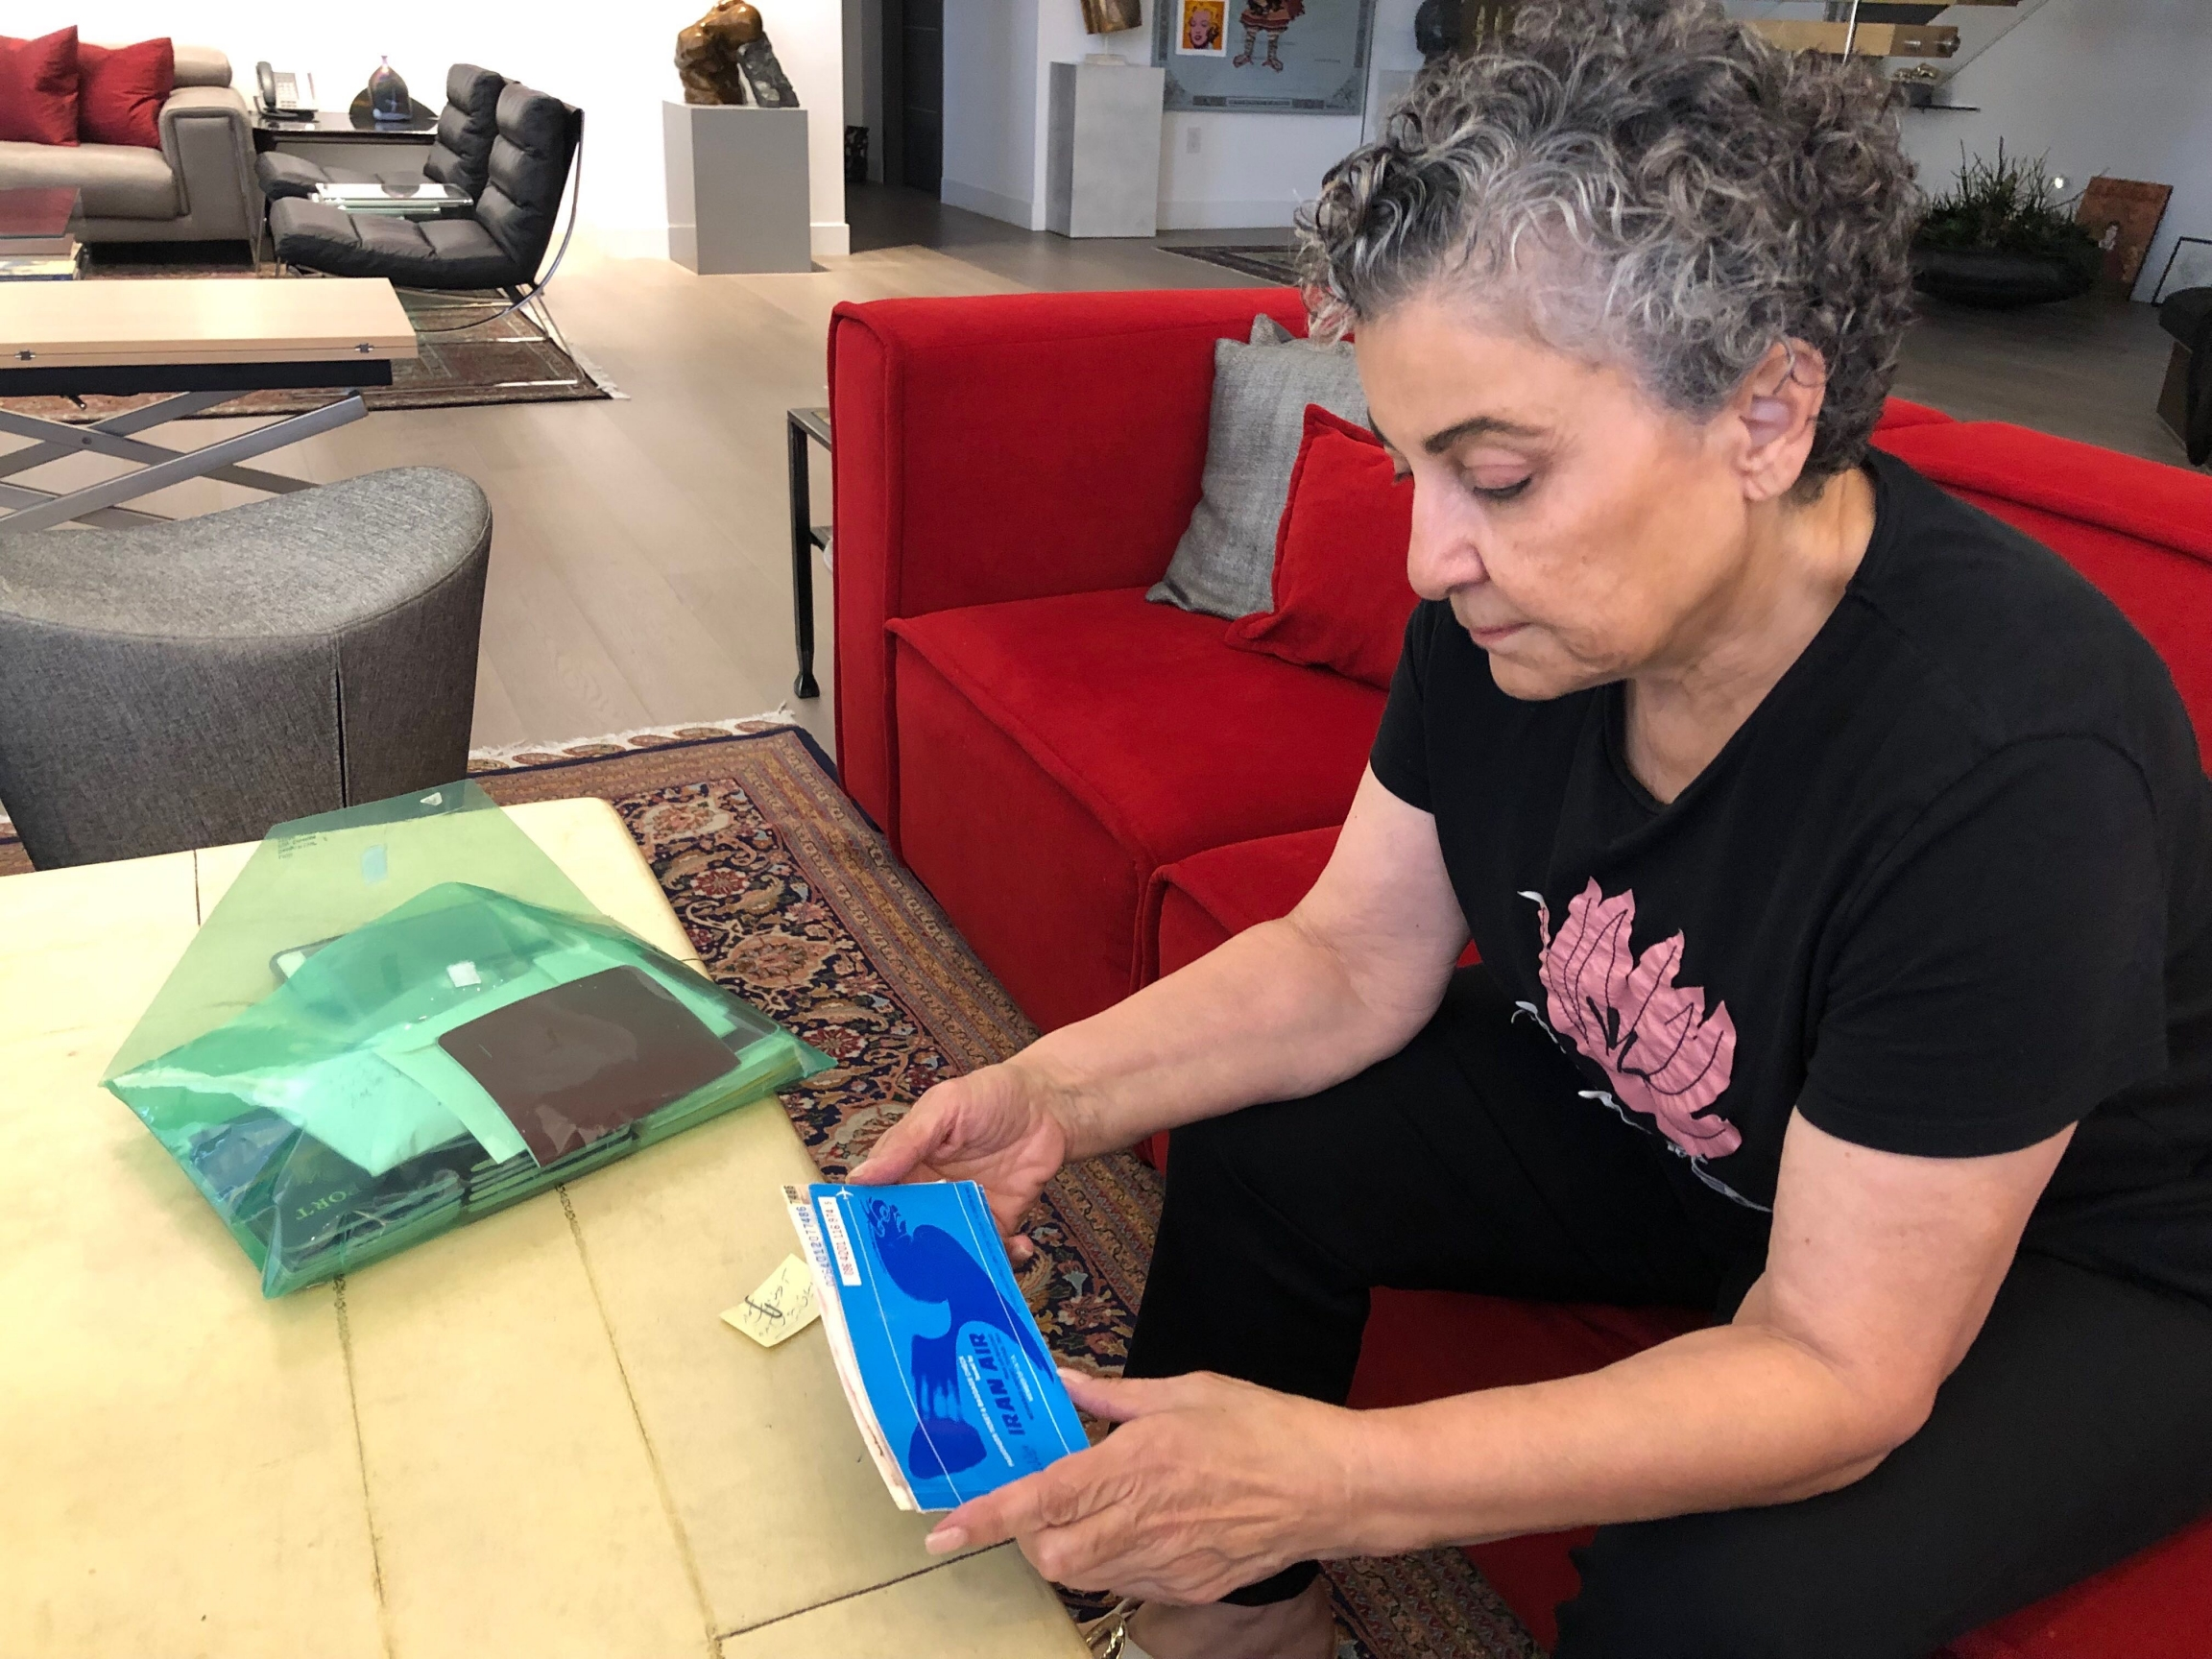 Iranian American radio host Homa Sarshar at her home in Los Angeles. She holds the plane ticket that brought her to the US more than 40 years ago.